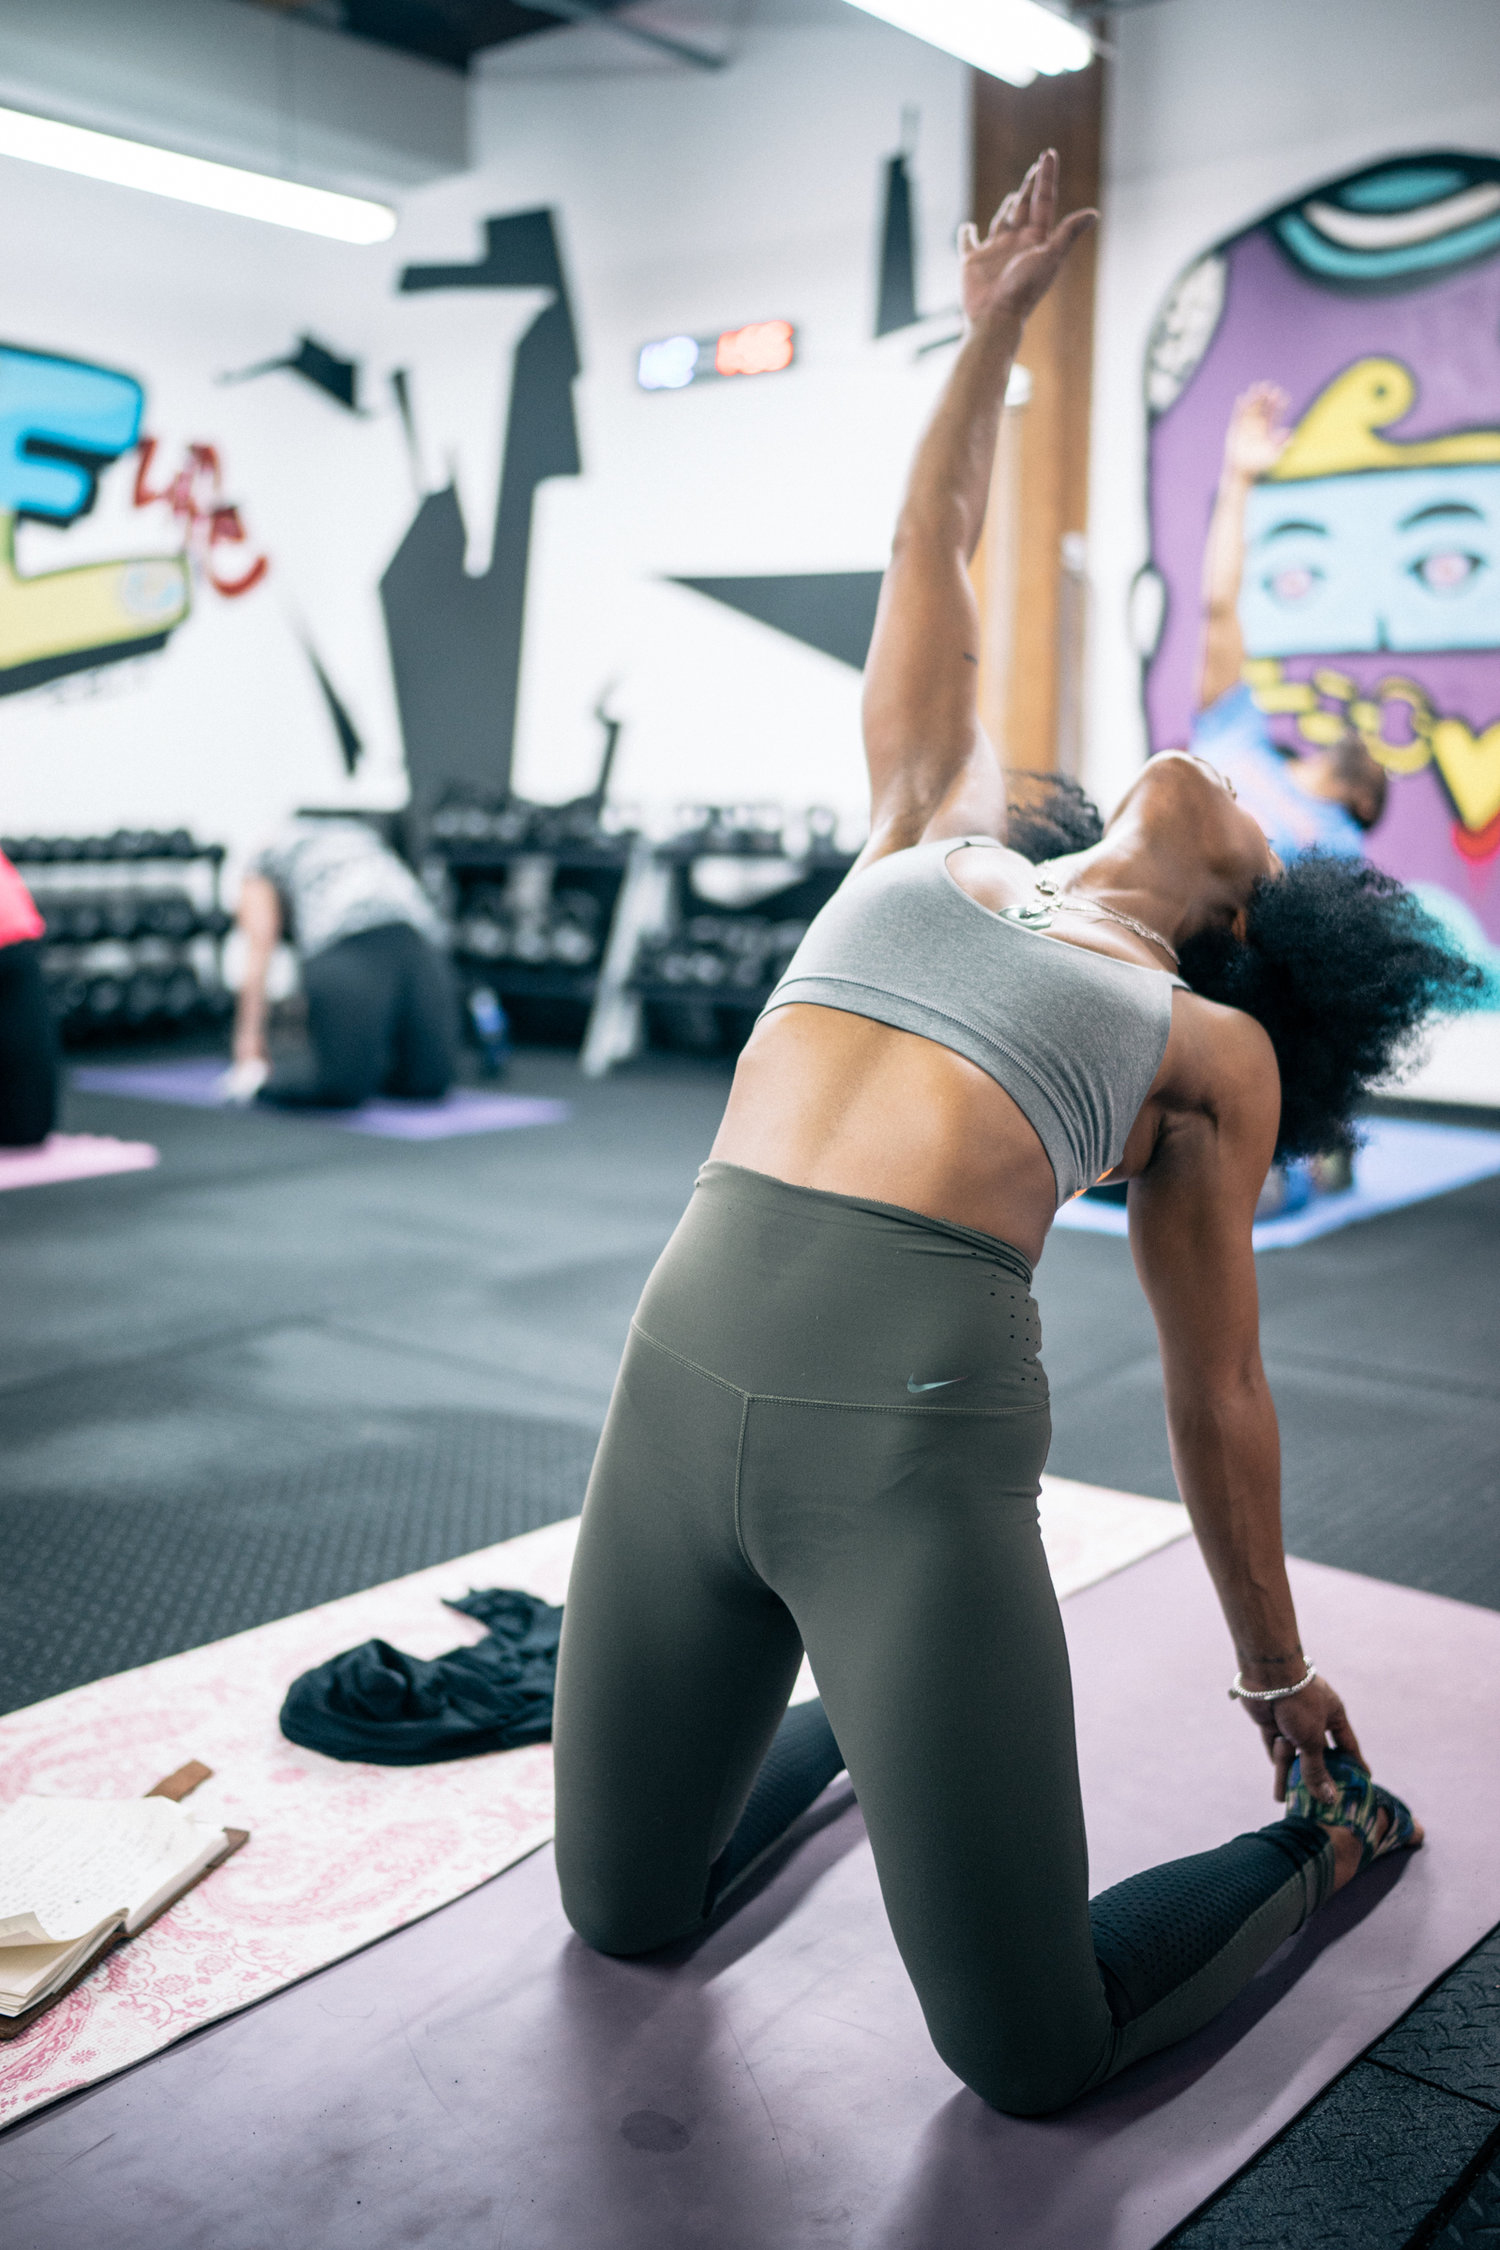 Asia Nichole Jones leads a class at Uhle Fitness Studios in Chicago.